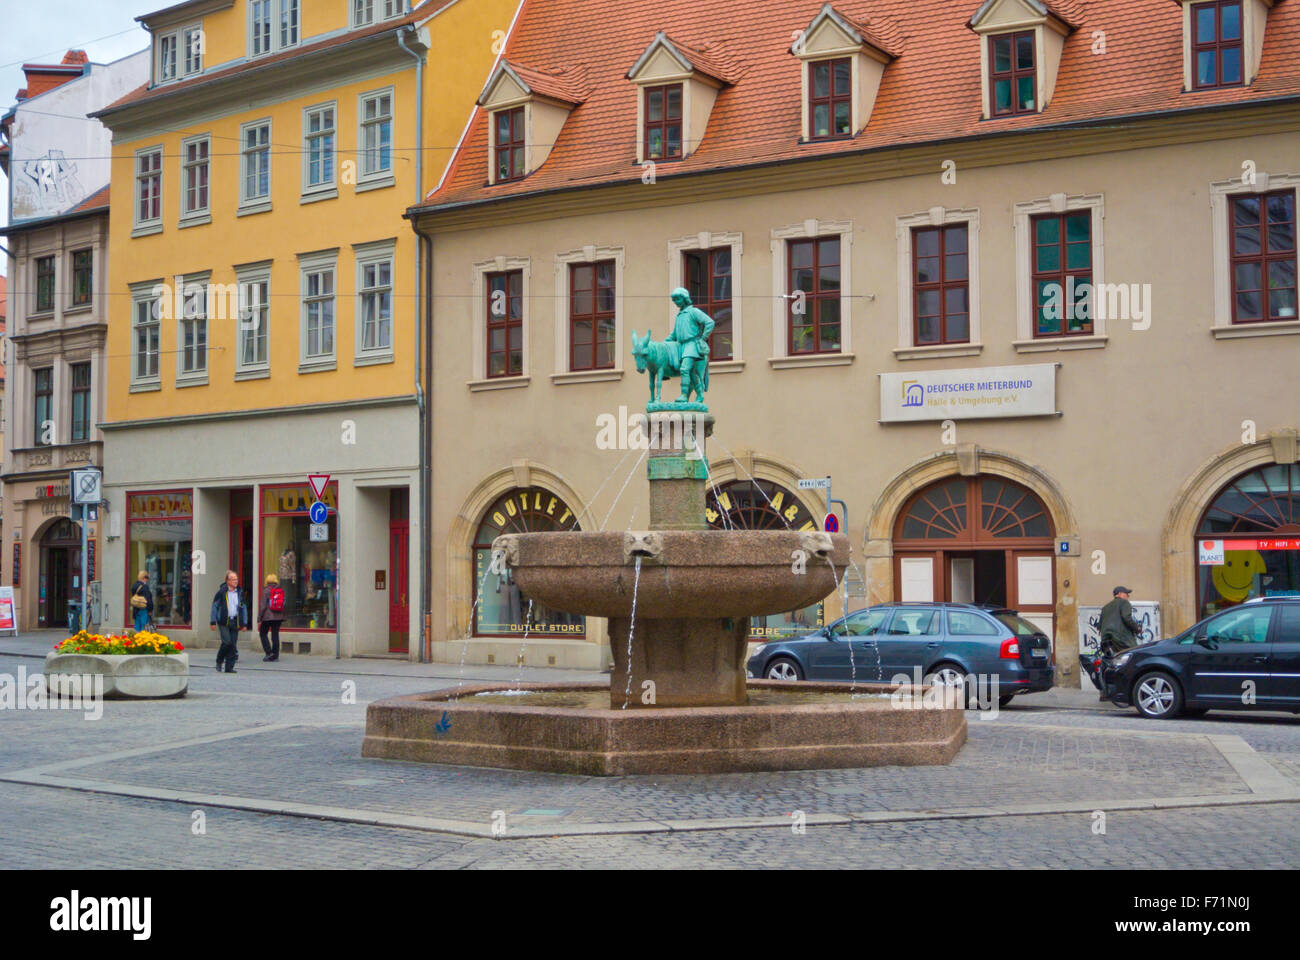 Alter Markt, with Eselsbrunnen fountain, Altstadt, old town, Halle, Saxony-Anhalt, Germany - Stock Image